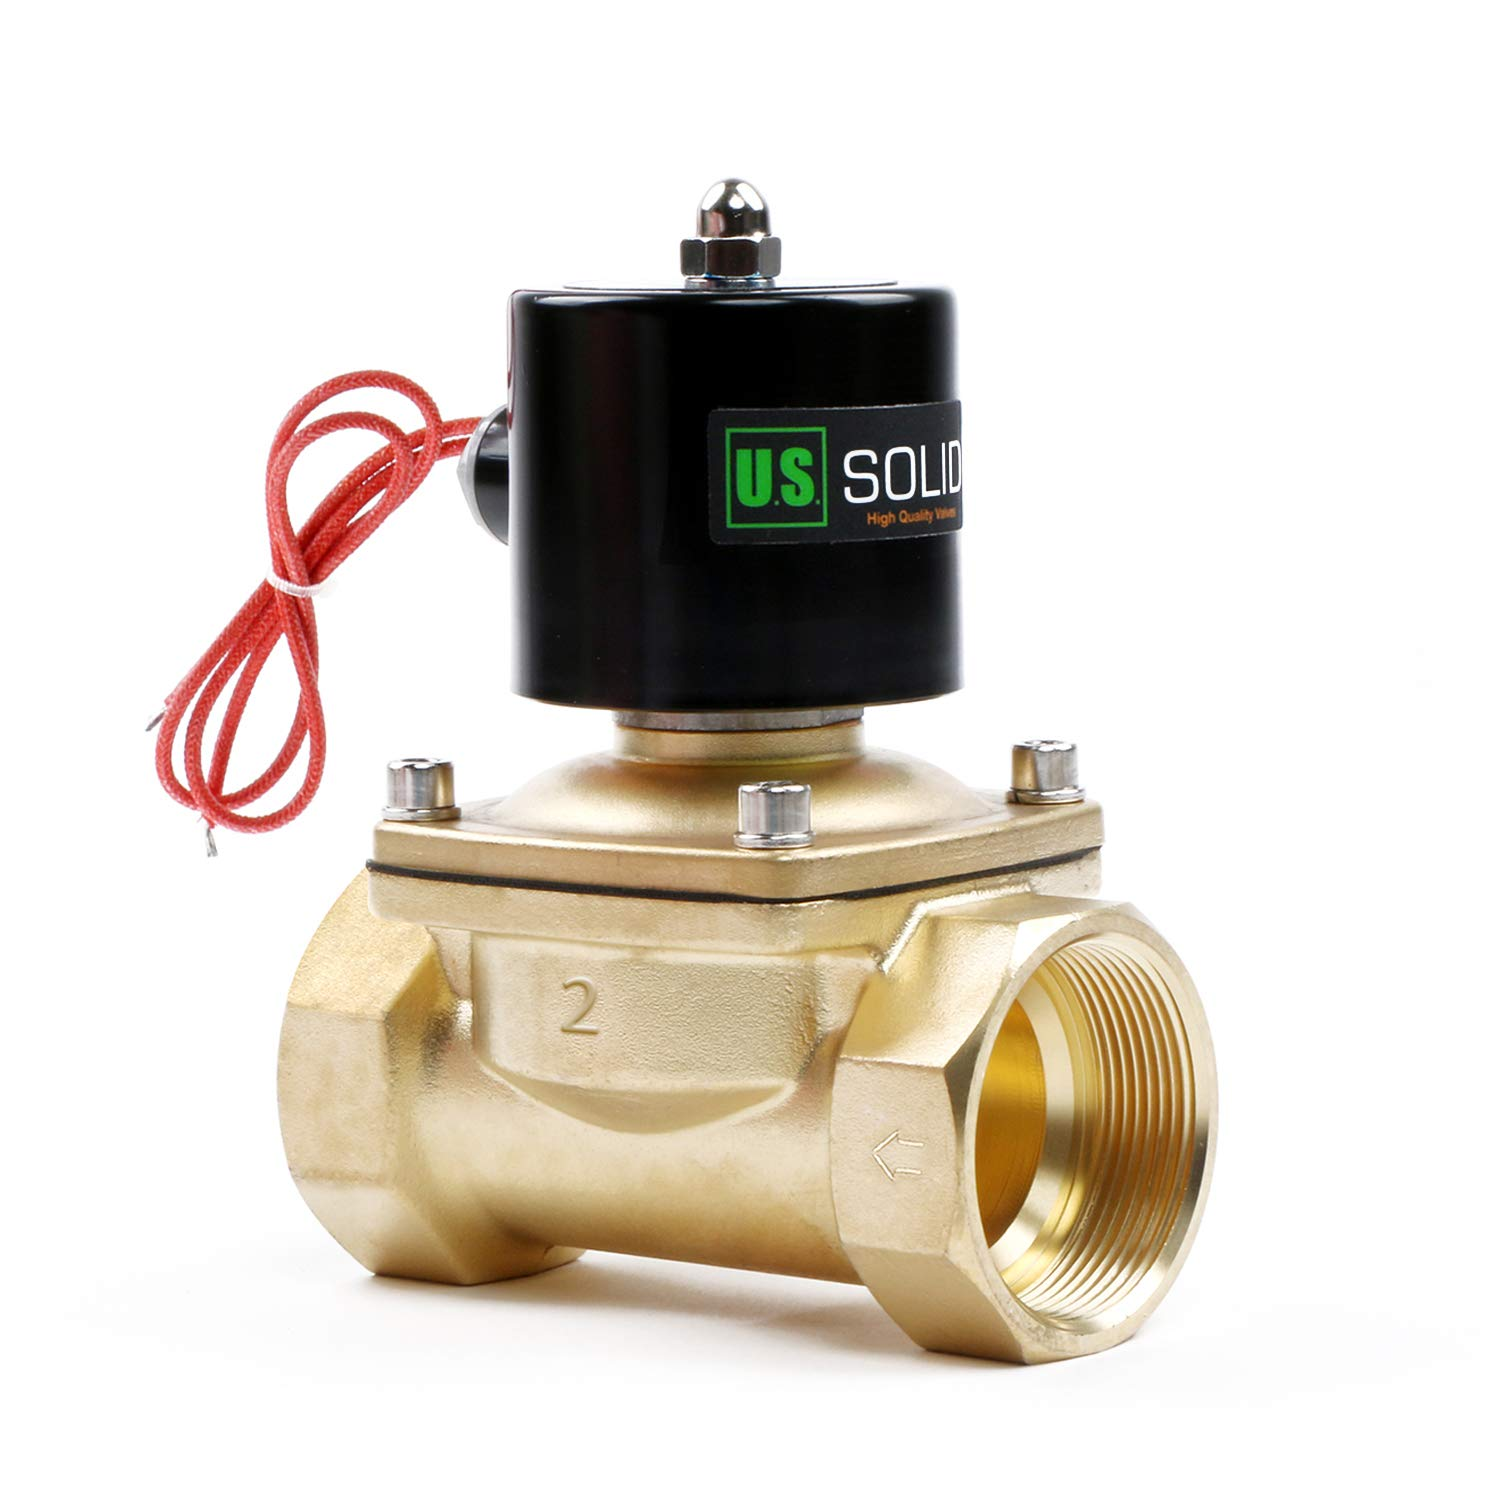 Closed Solenoid Valve Mini Water Electric Normally DC 12V Parts Useful